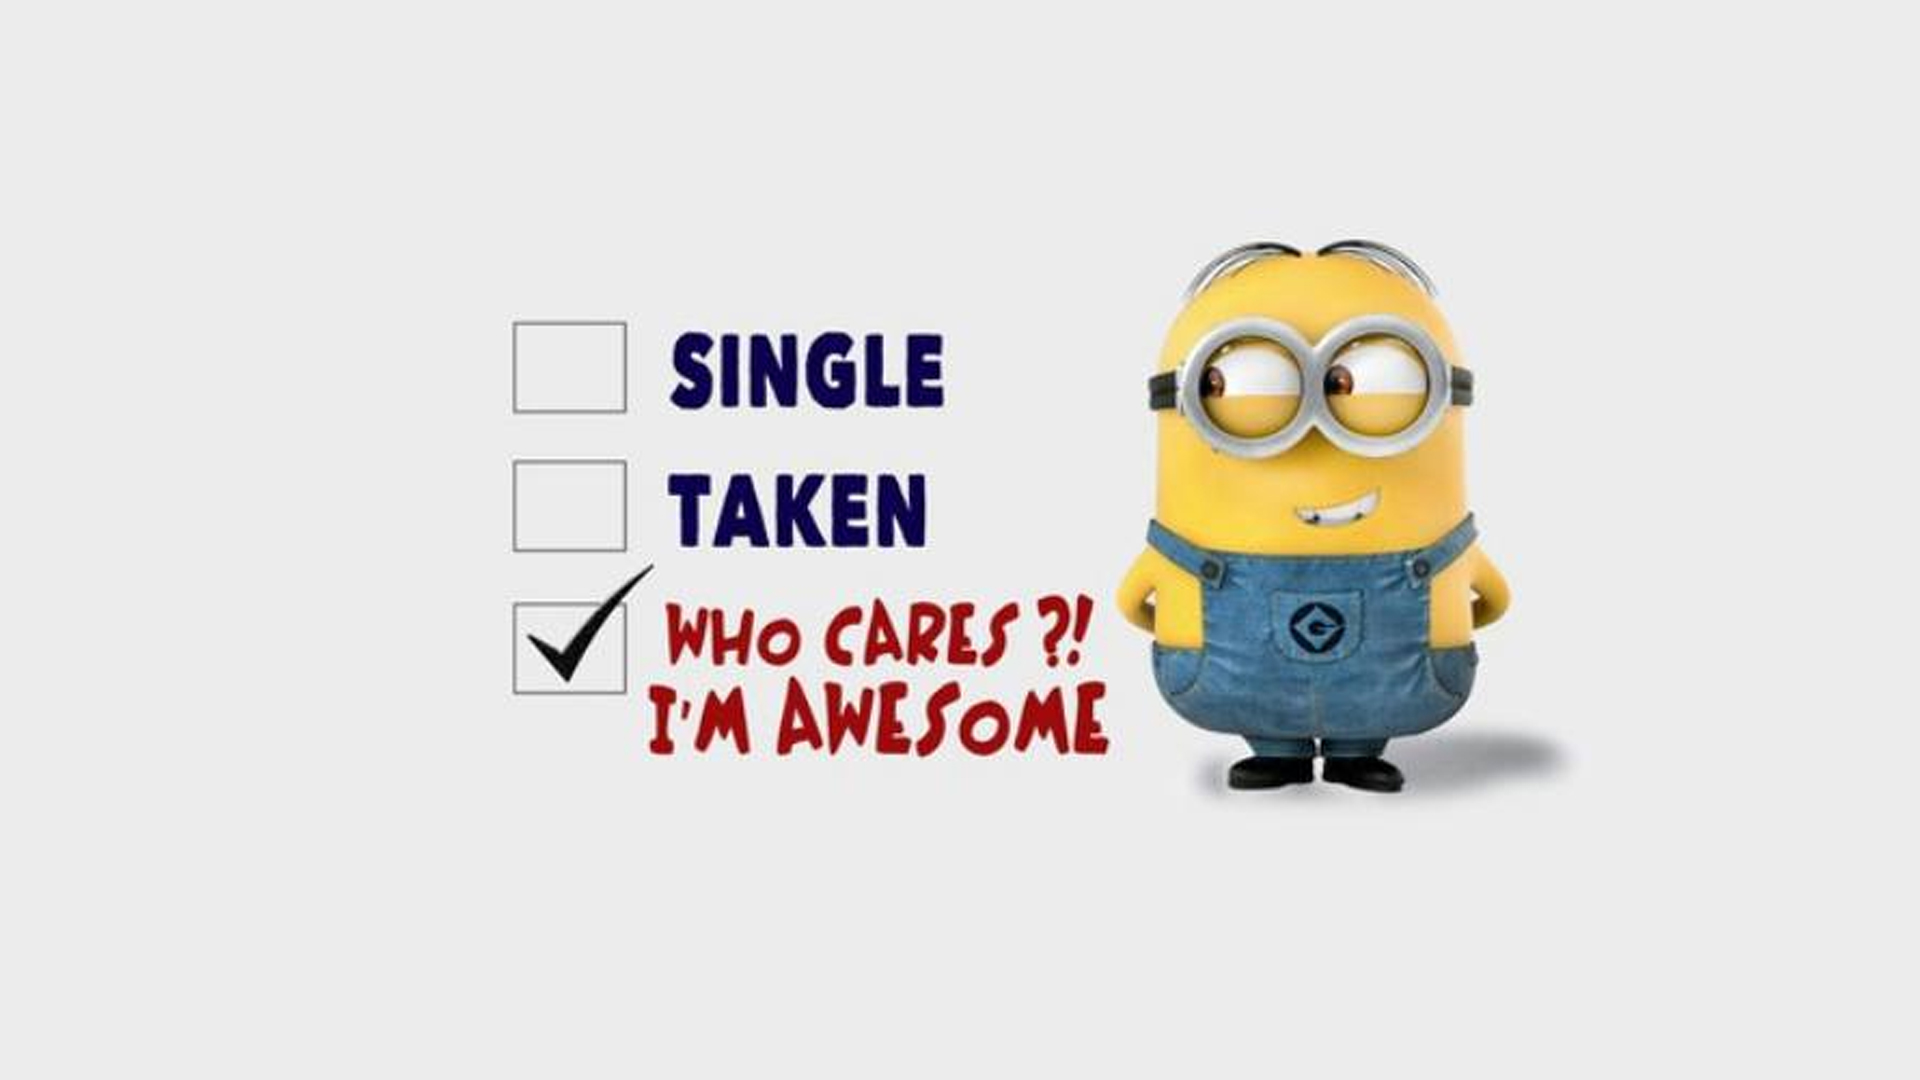 Cute Girl Wallpaper For Facebook Profile Minions 2015 Animated Film Hd Wallpapers Volganga